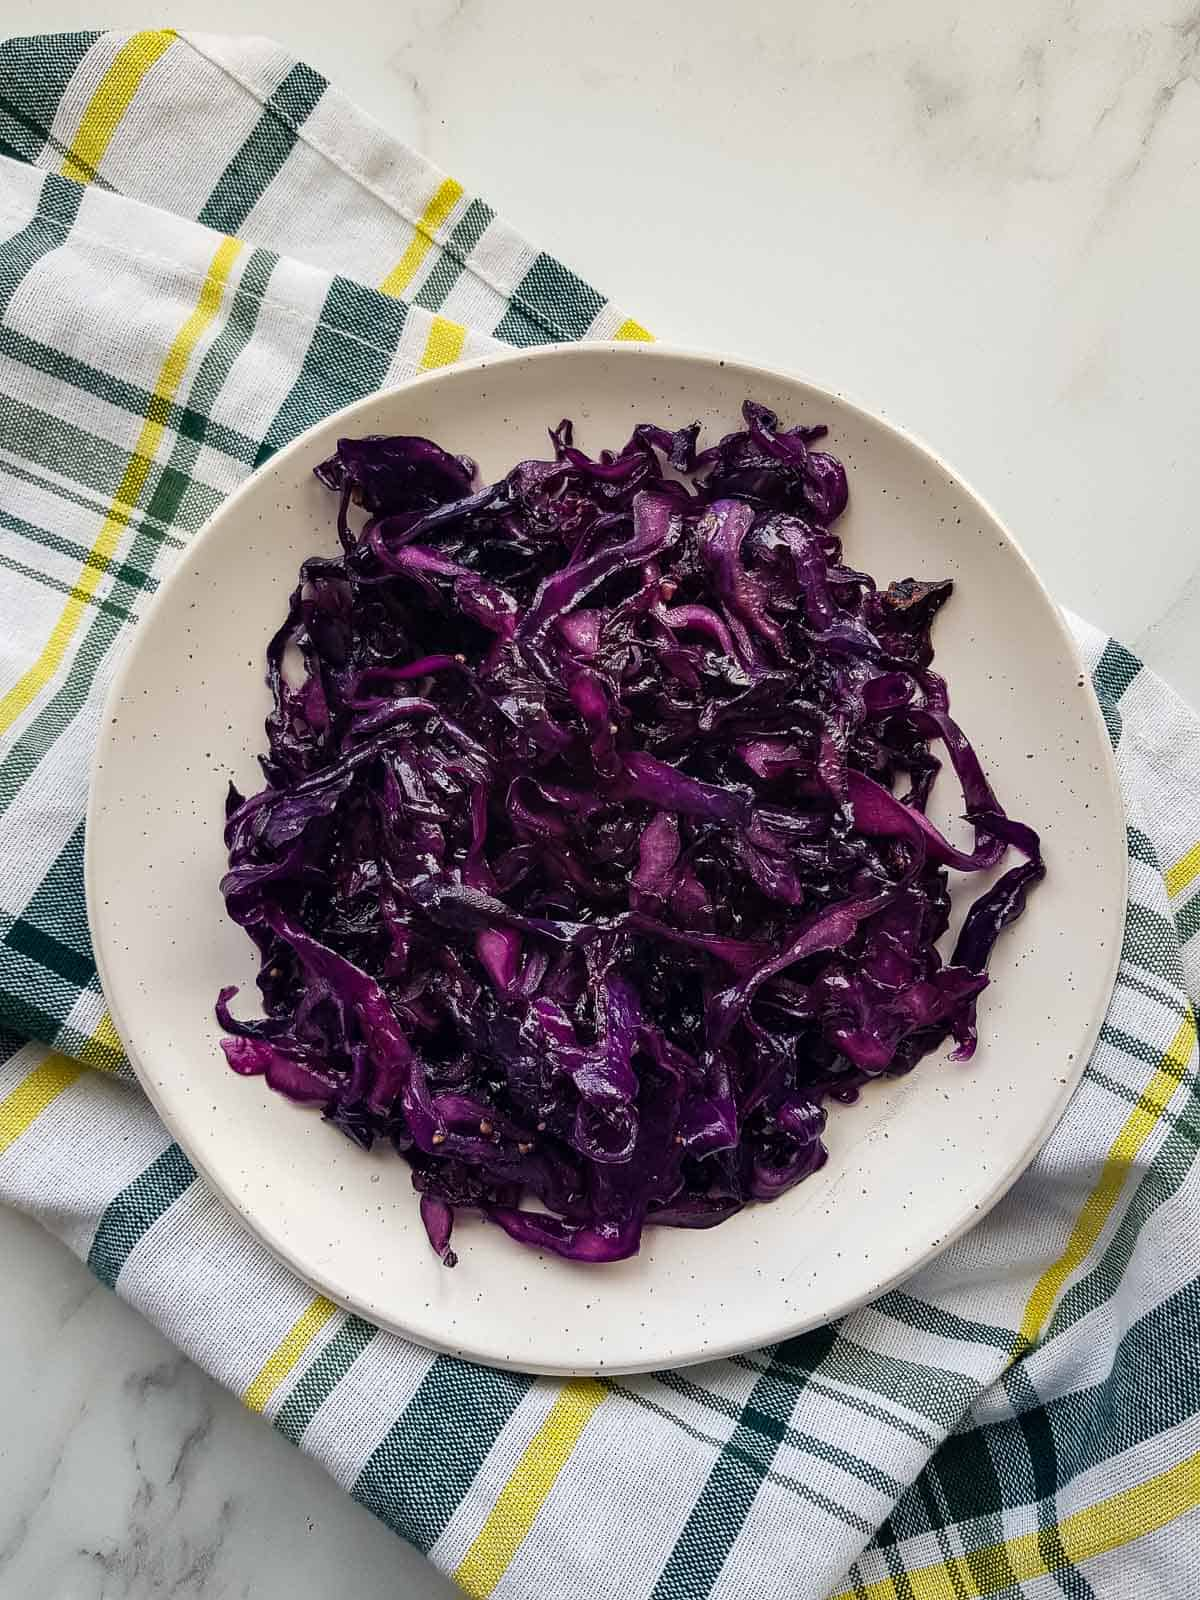 Plated braised red cabbage.